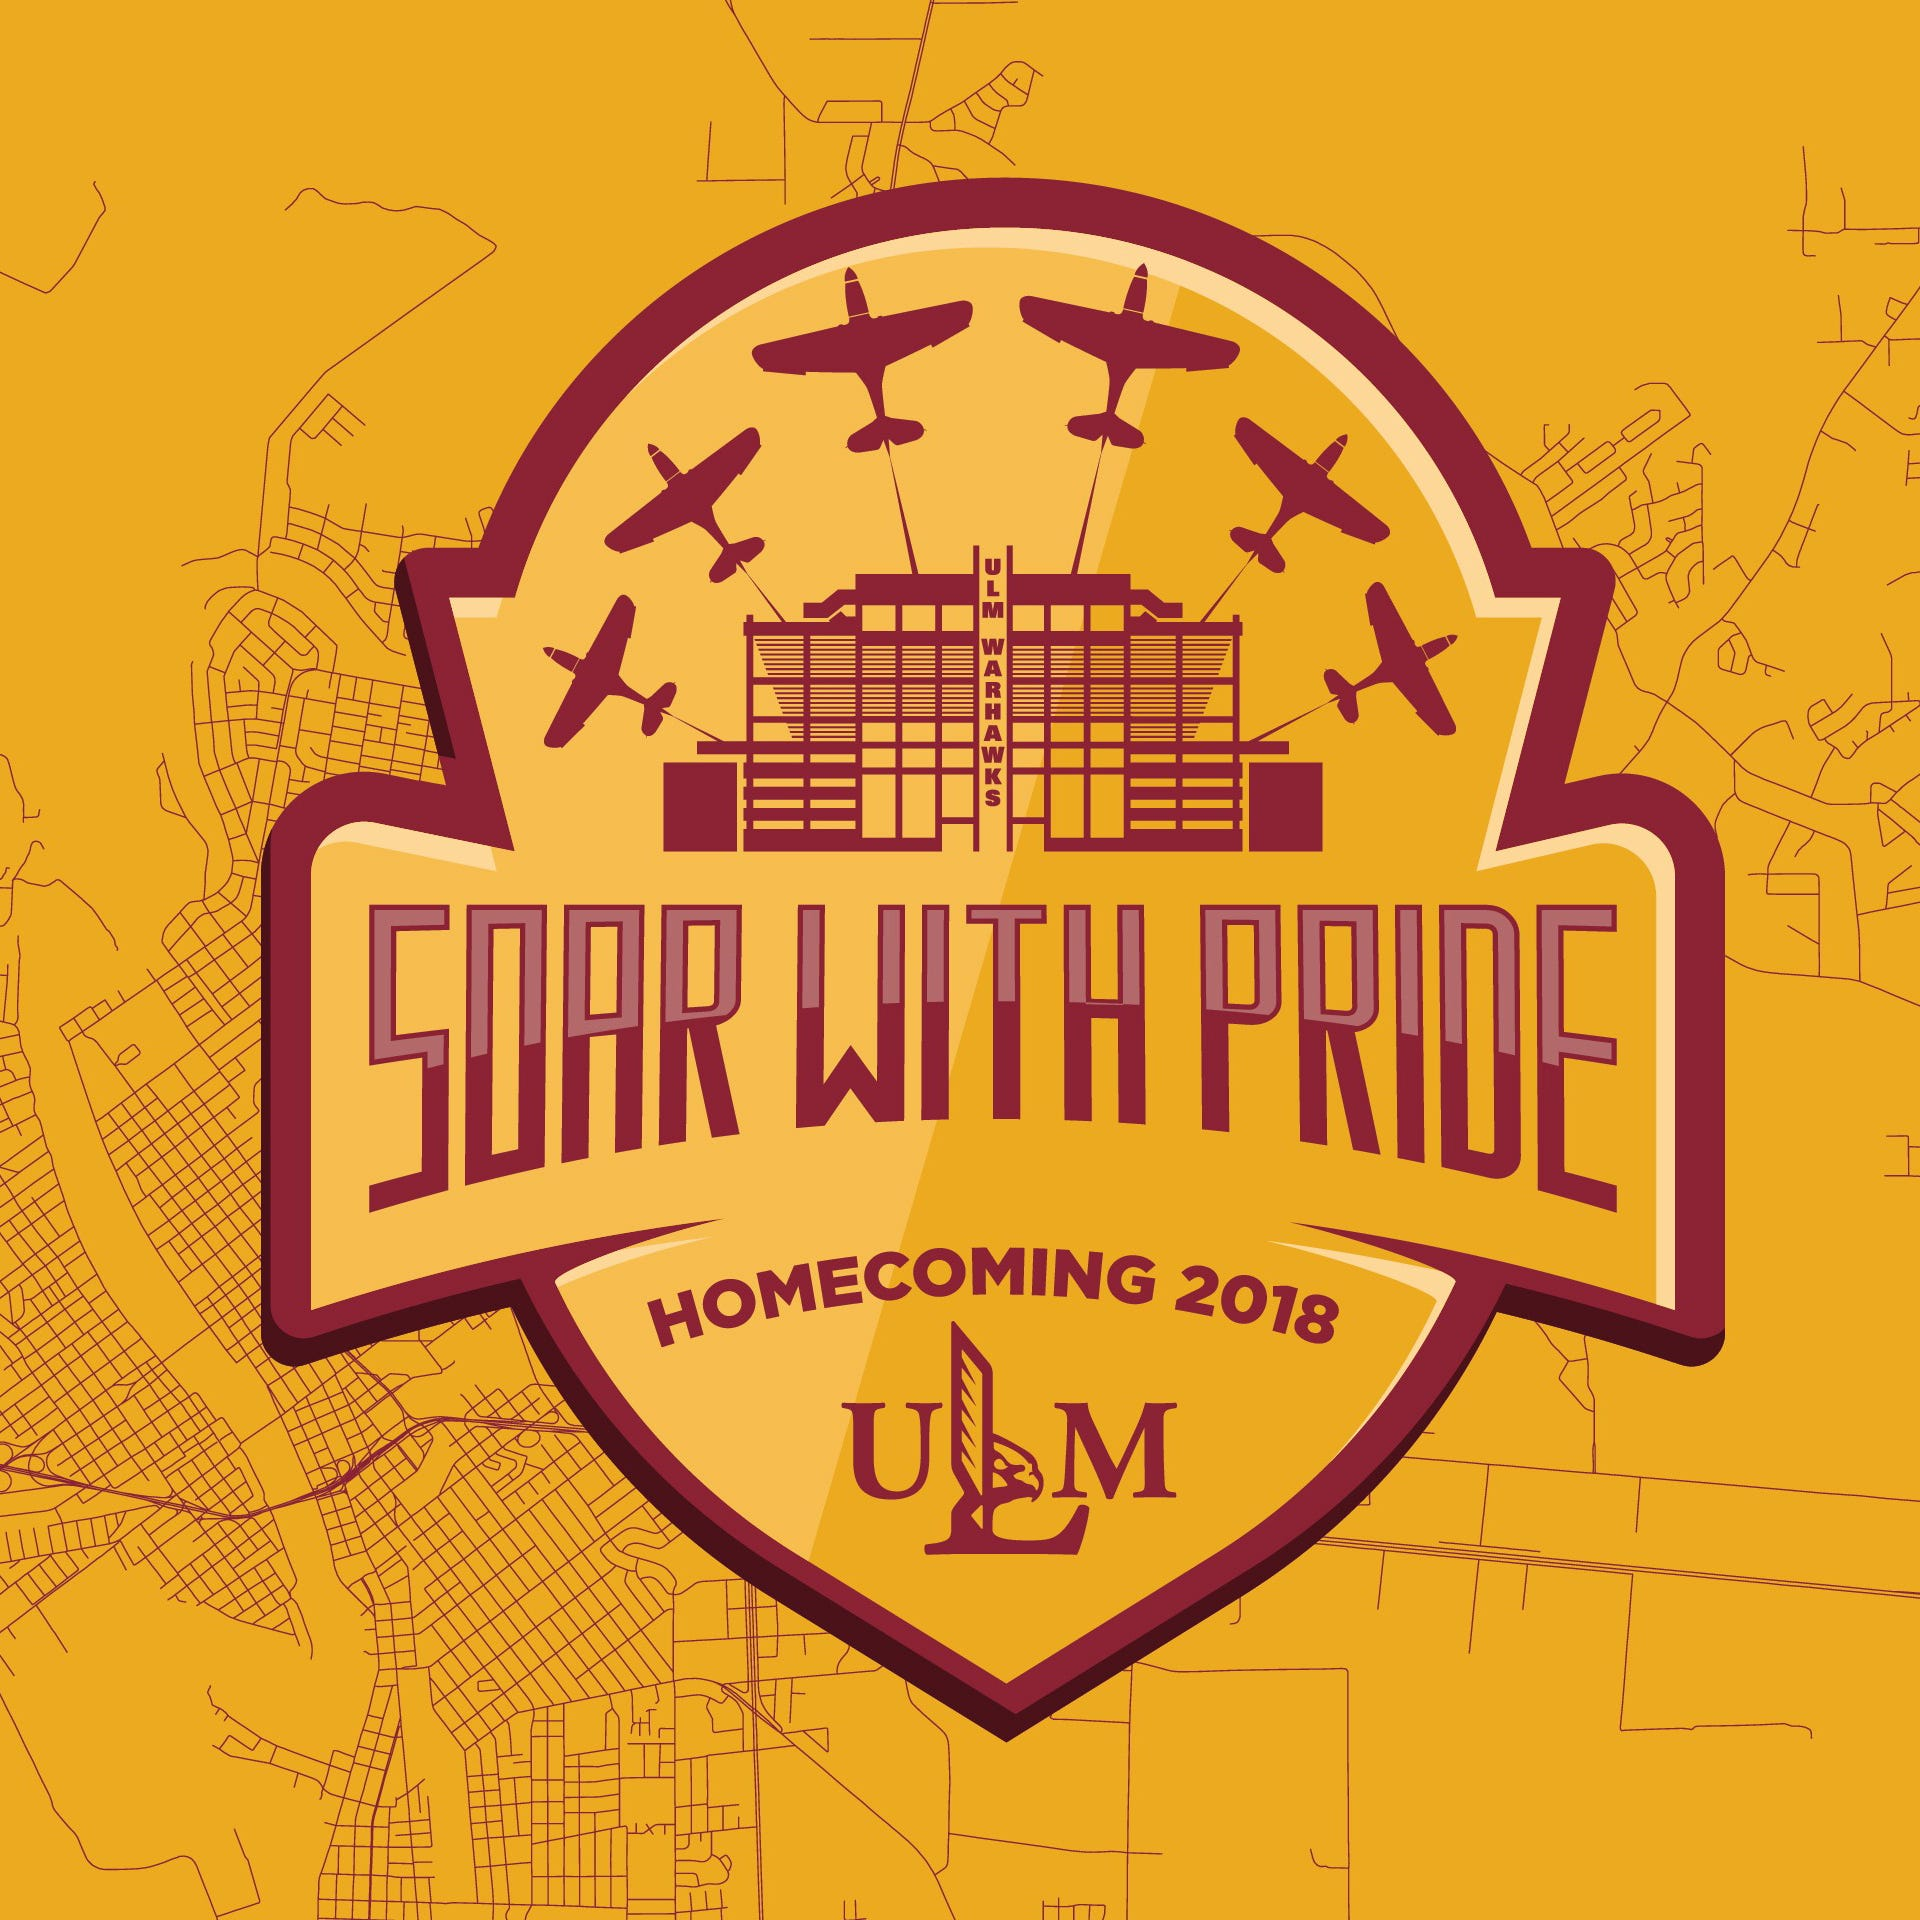 Warhawks plan to soar during homecoming weekend